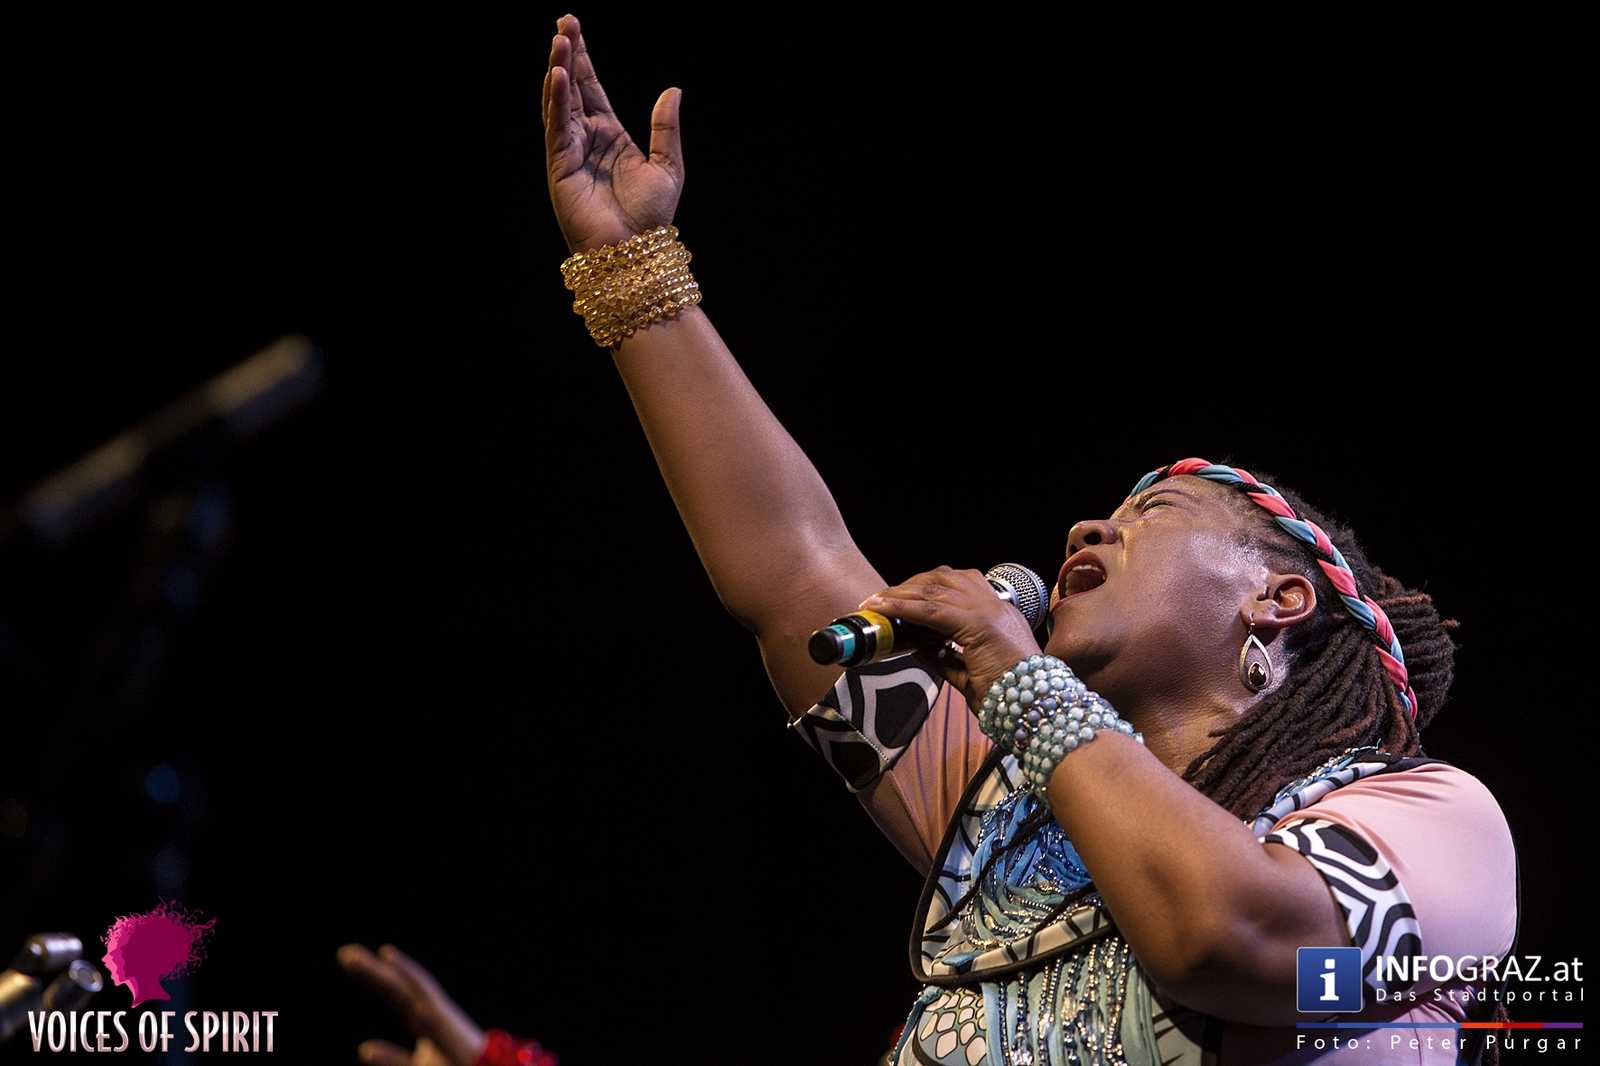 soweto gospel choir internationales chorfestival statdthalle graz voices of spirit eroeffnung festivals 2016 142